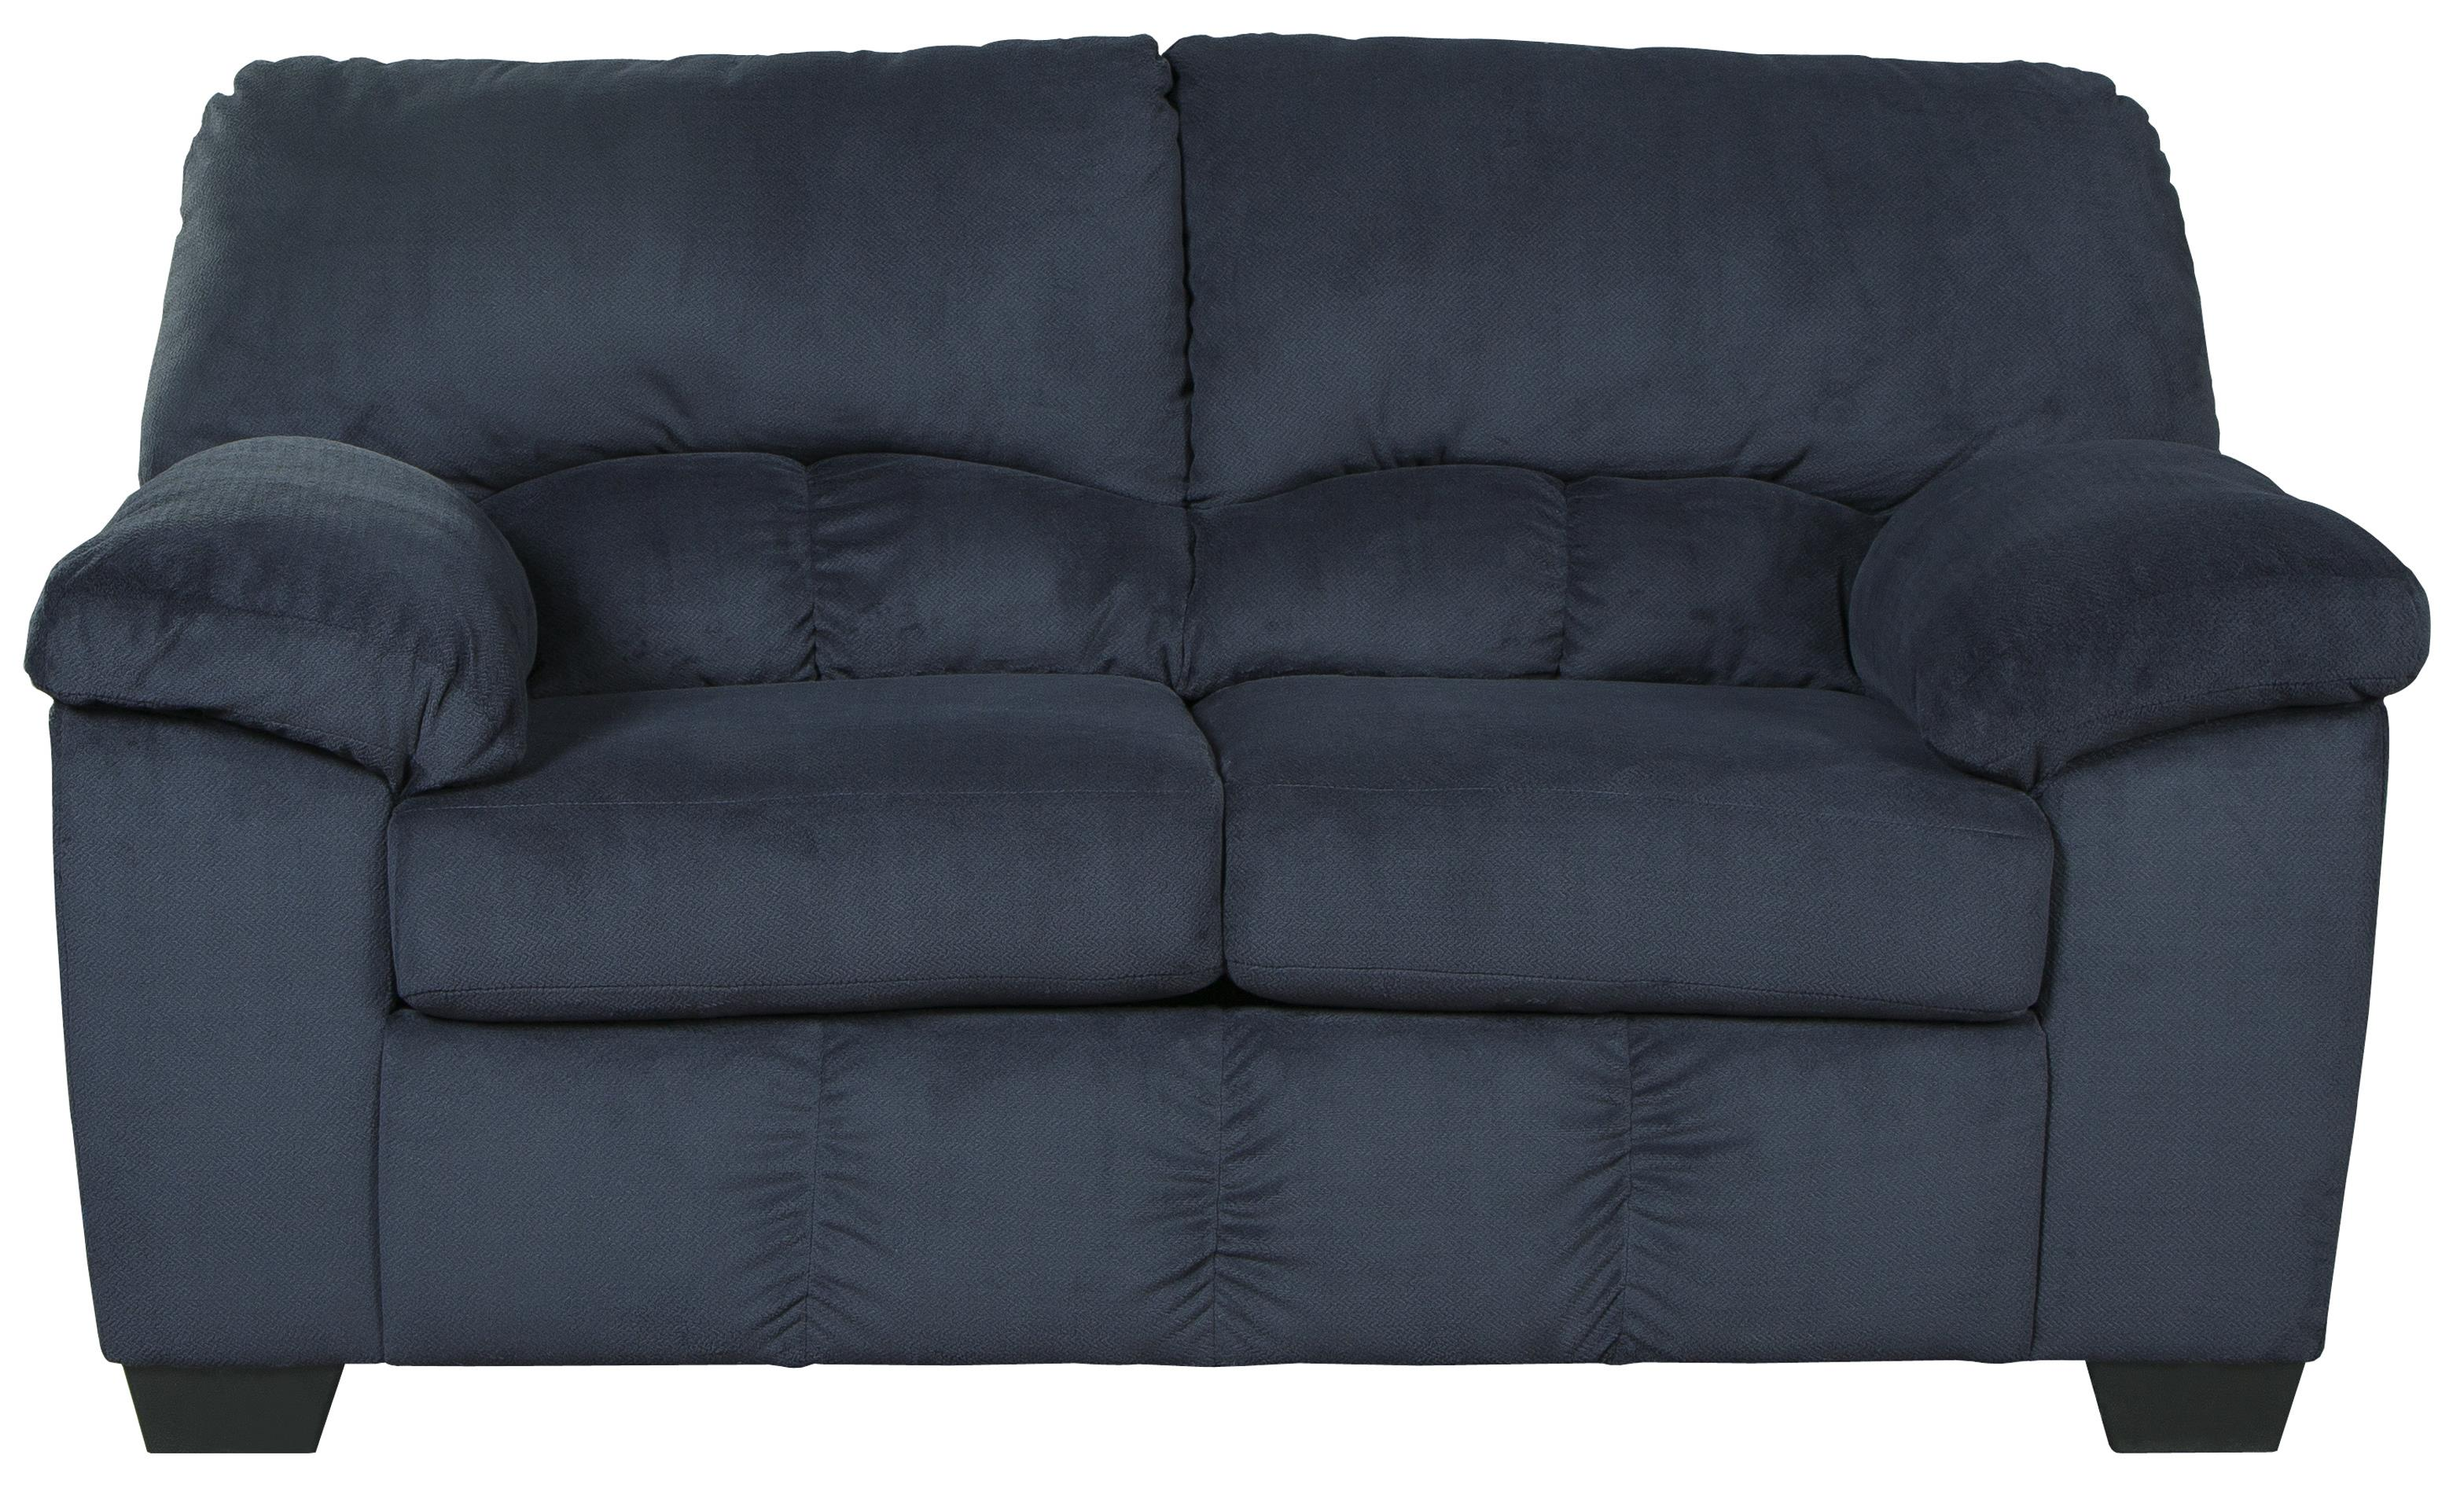 Signature Design by Ashley Dailey Loveseat - Item Number: 9540235